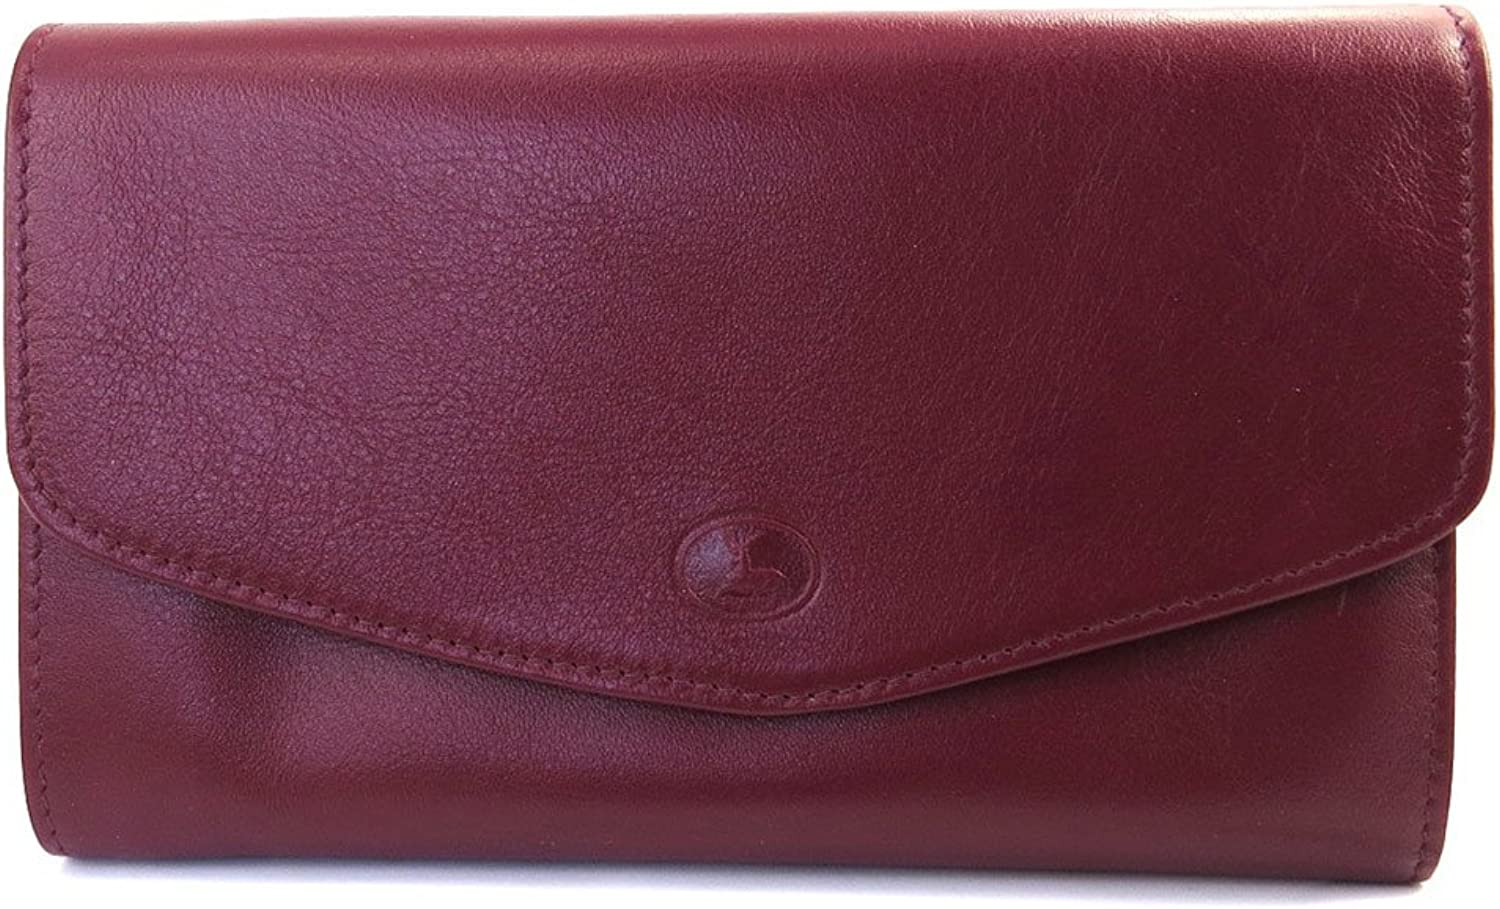 Leather wallet + checkbook holder 'Frandi'burgundy.